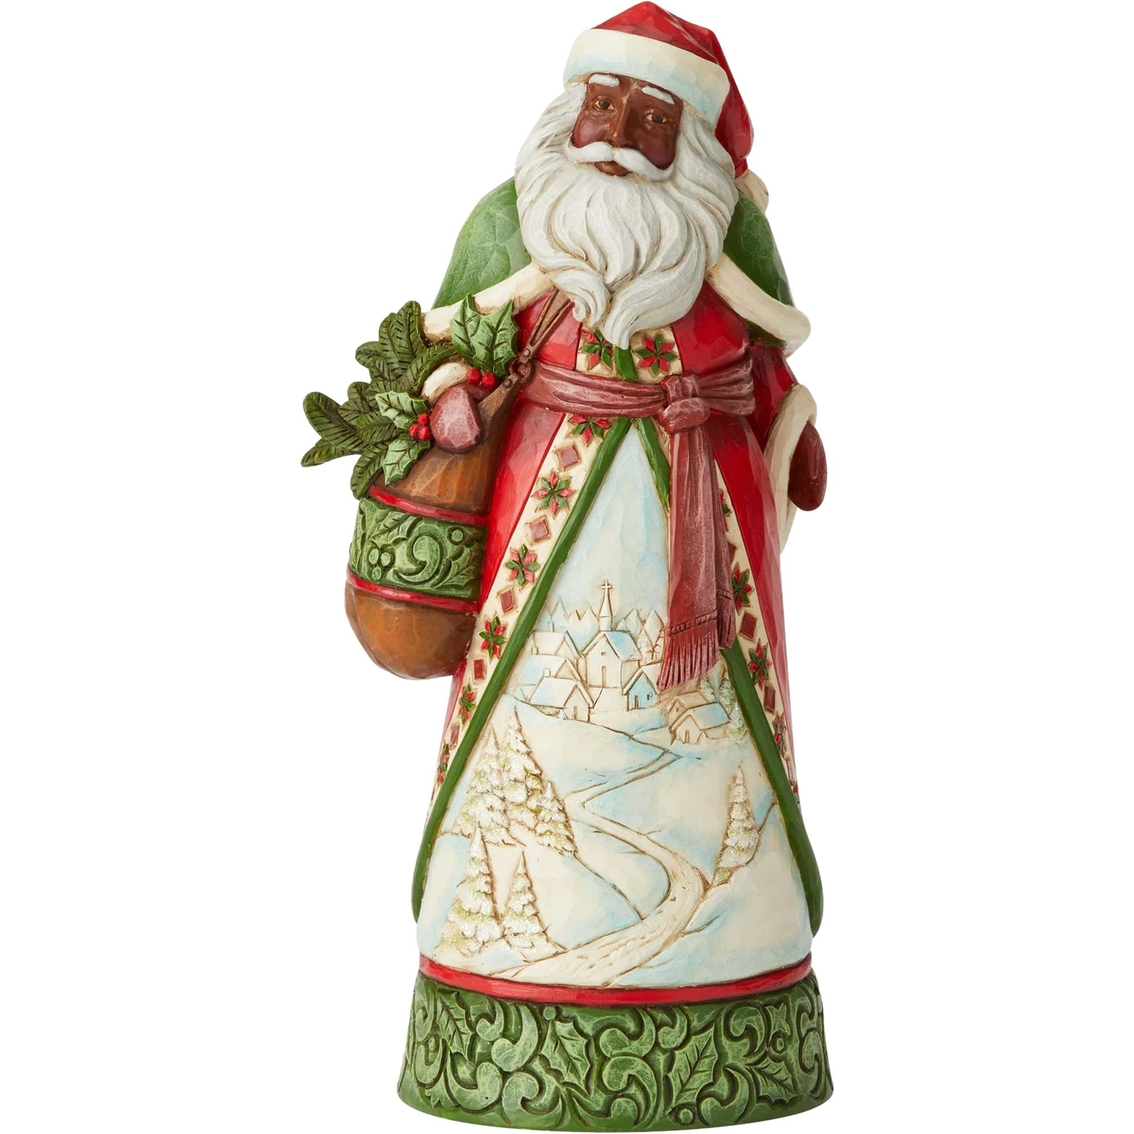 Jim Shore Heartwood Creek Santa With Winter Scene Figurine.